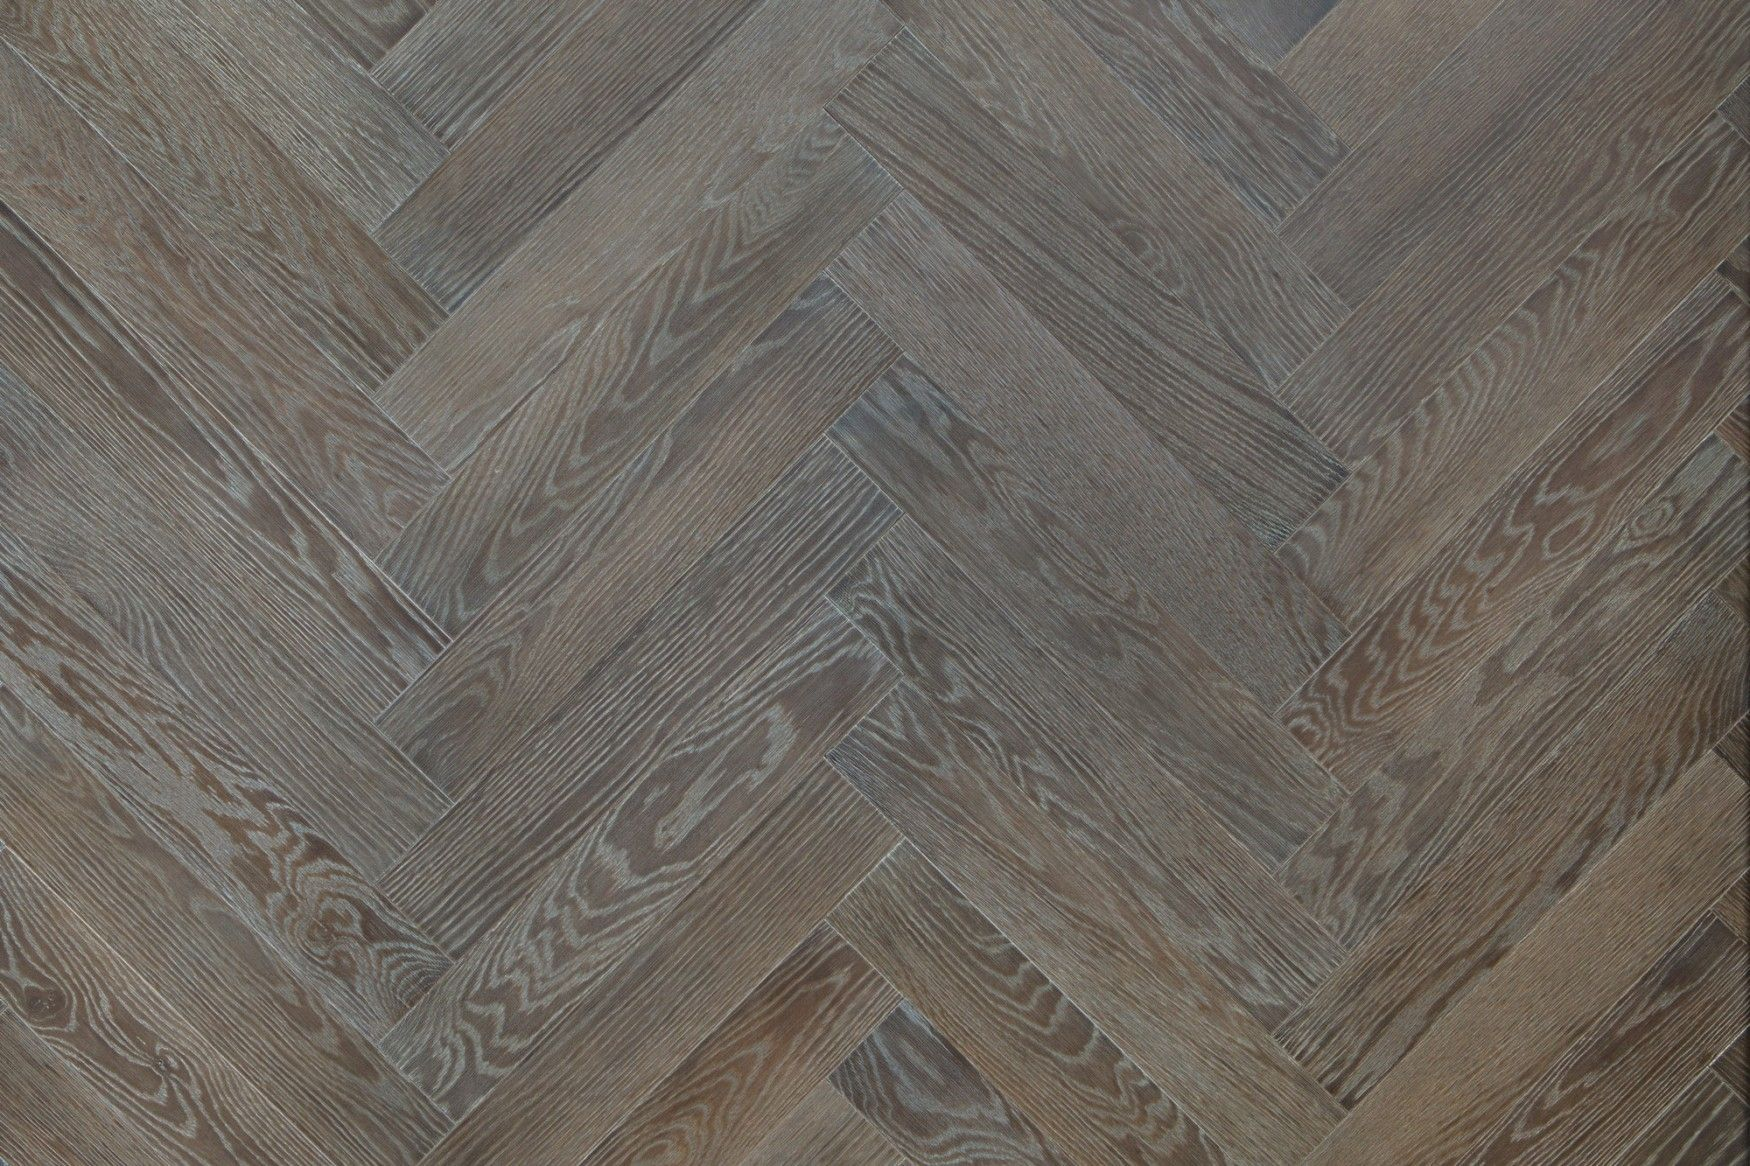 Silver Tiger Mysterious Oak Special Treated And Finished With Several Layers Of Differen With Images Oak Parquet Flooring Hardwood Floors Dark Engineered Wood Floors Oak